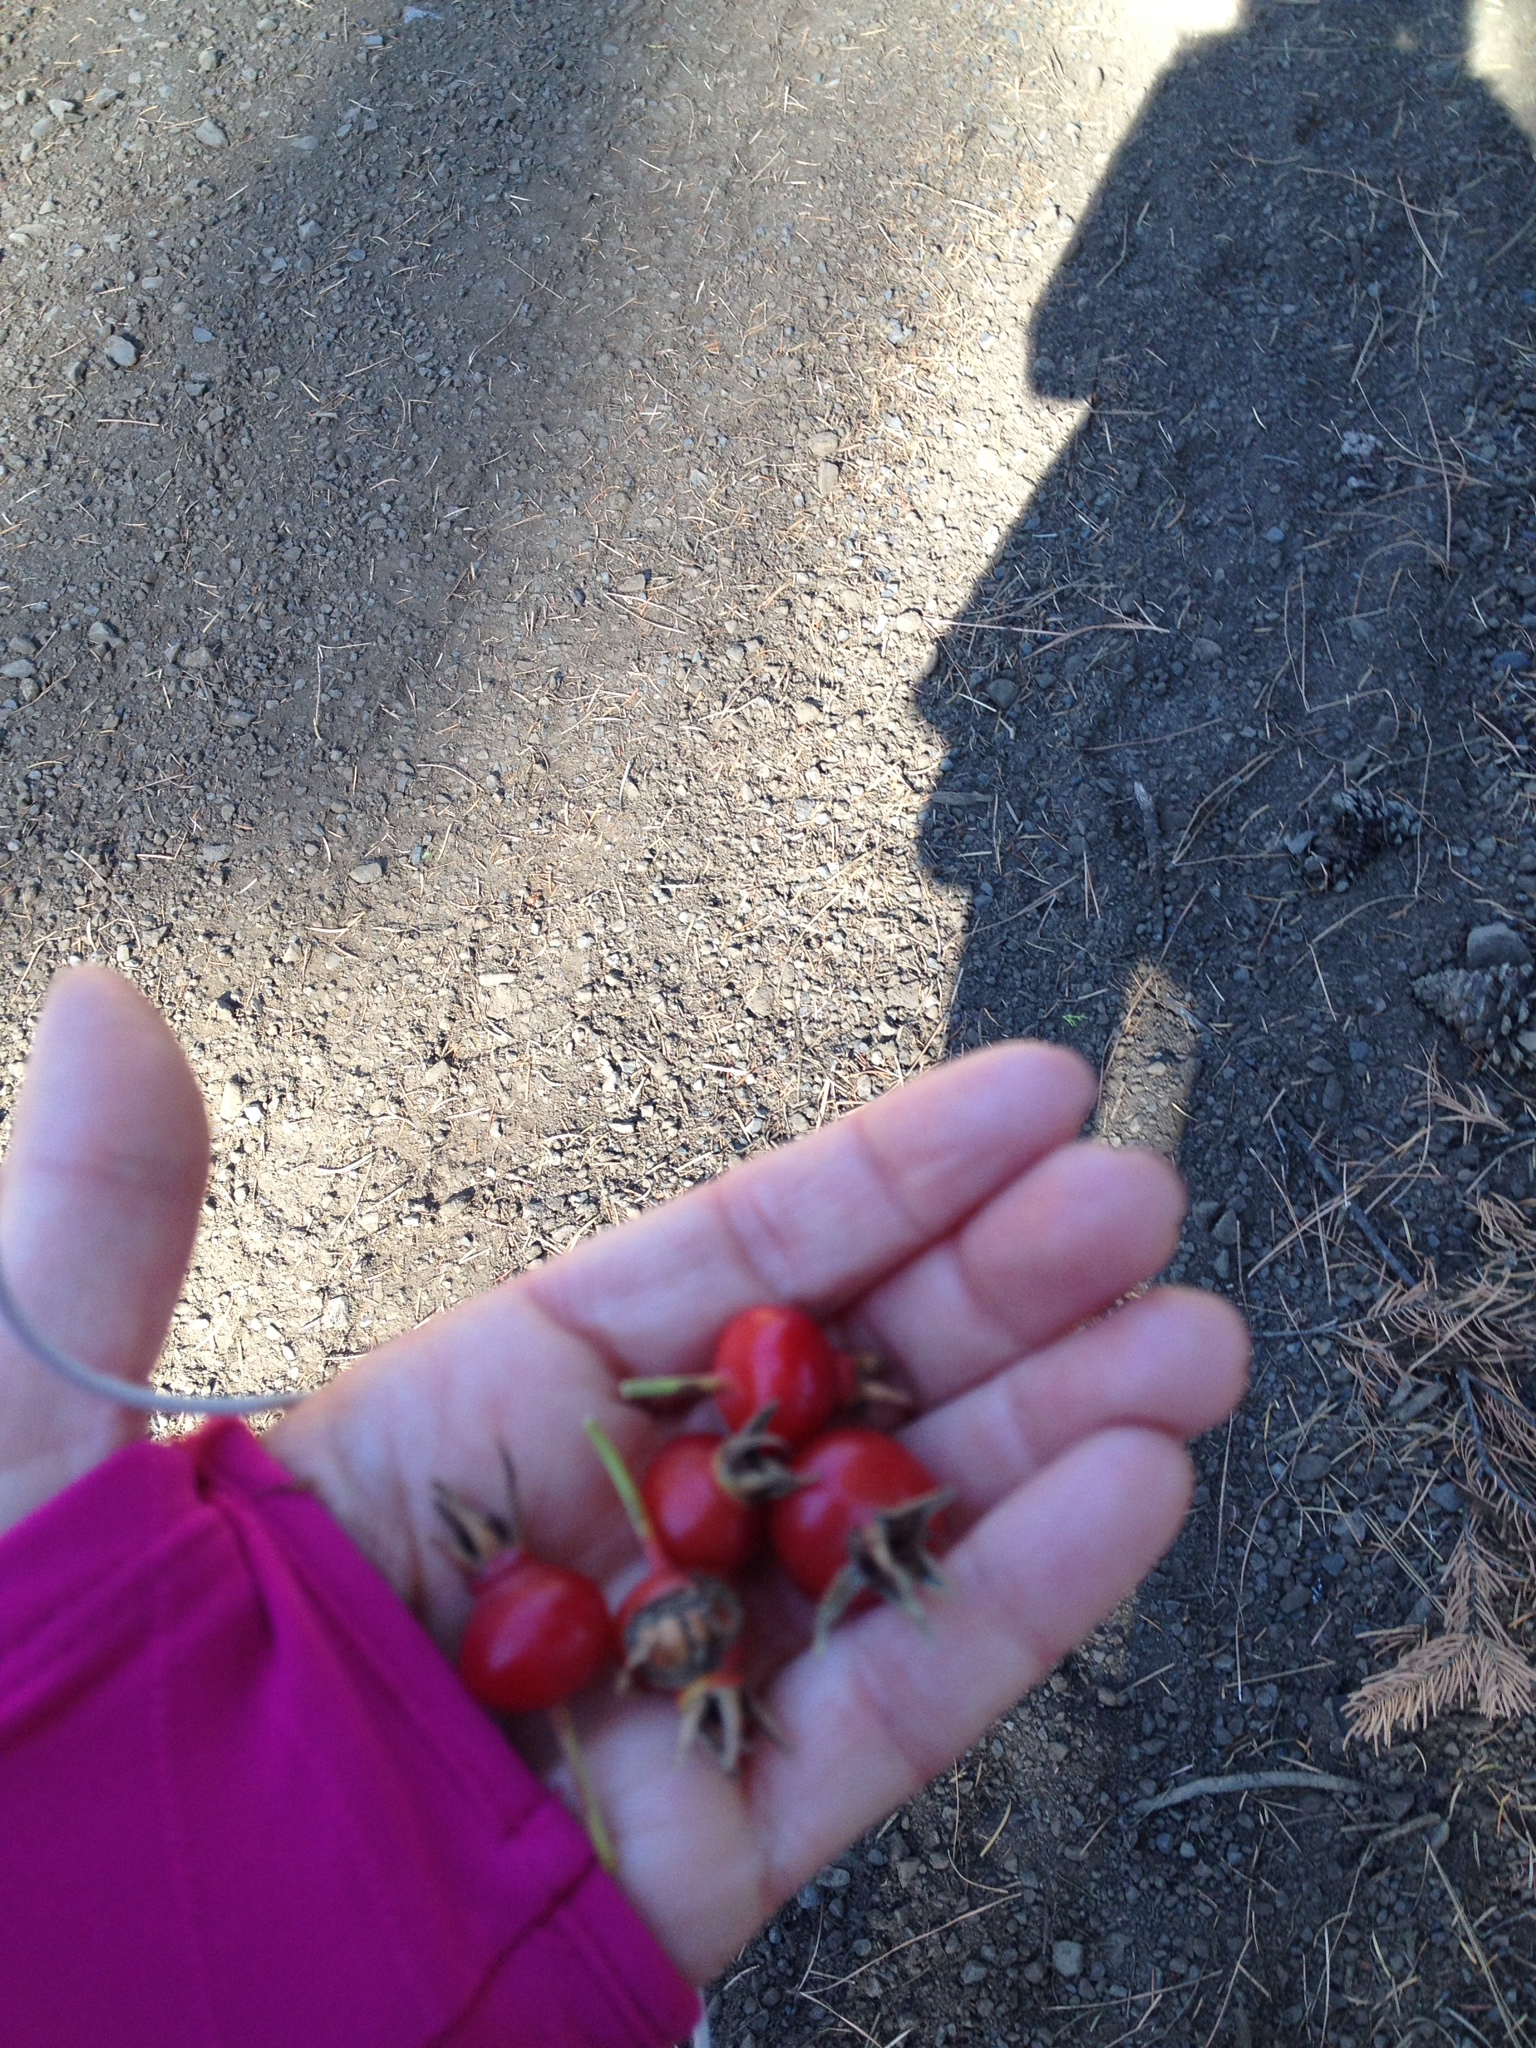 Rosehips from wild roses, good tea they say, found on one of my hike/runs